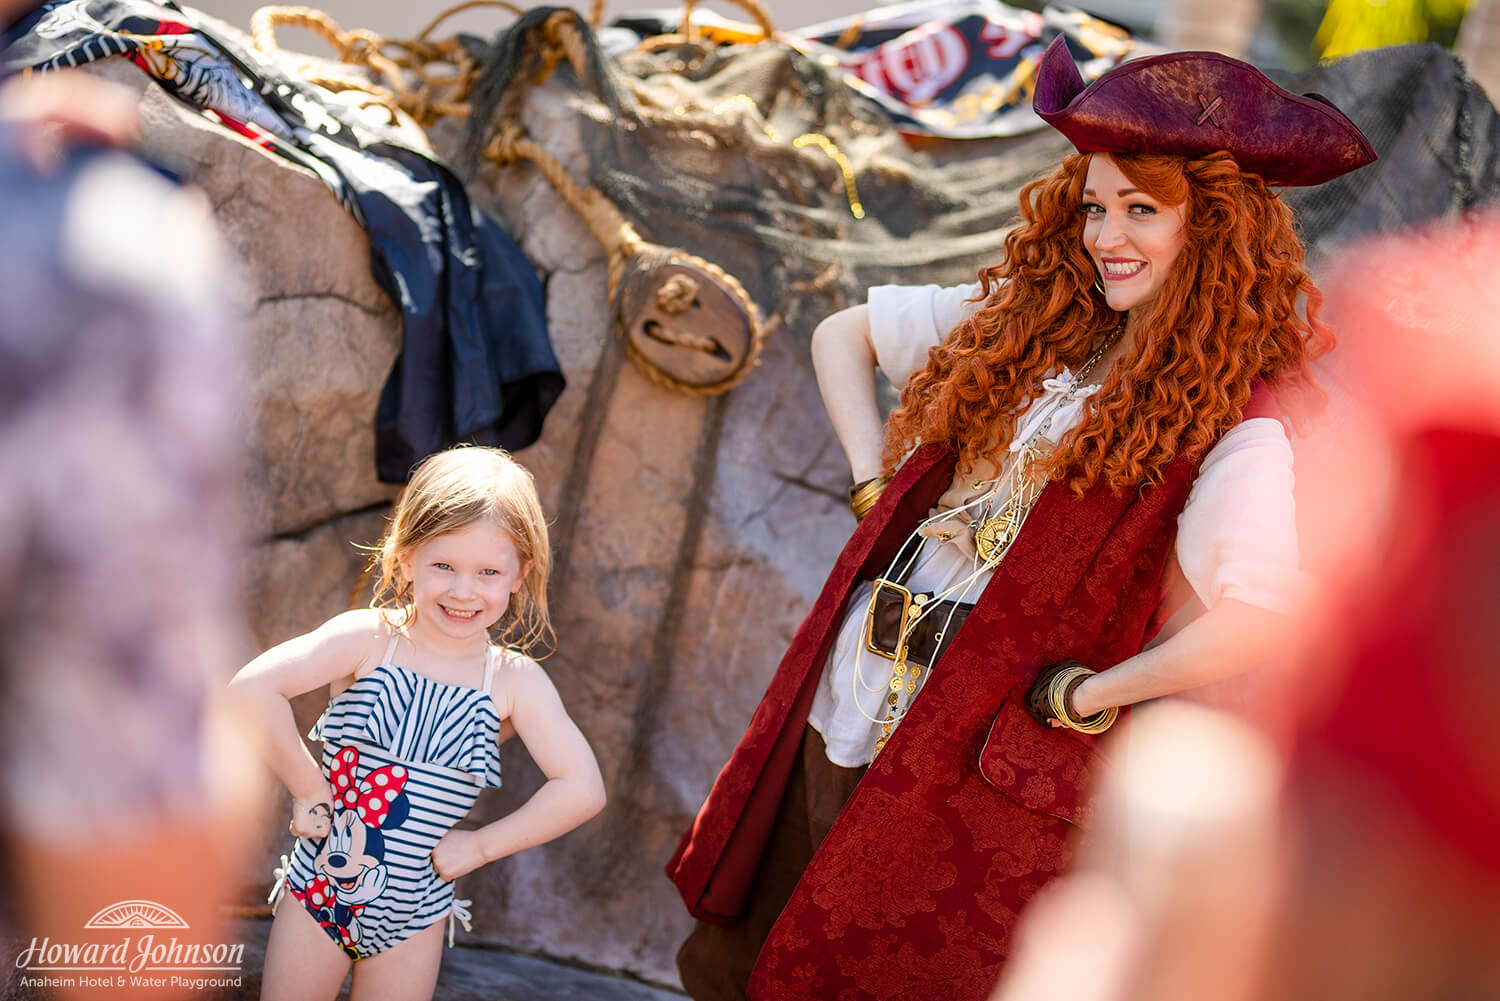 a little girl in a swimsuit poses for a picture with a woman dressed as a pirate